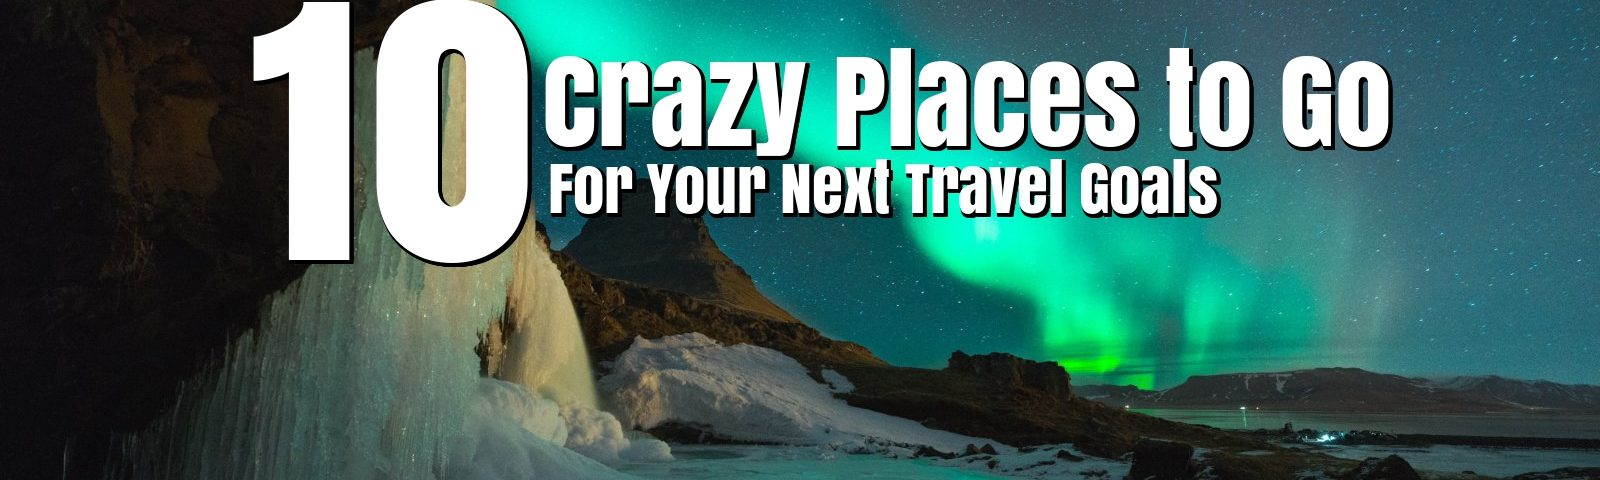 TRAVEL: 10 Crazy Places to Go and Things to Do For Your Next Travel Goal - thejerny.com